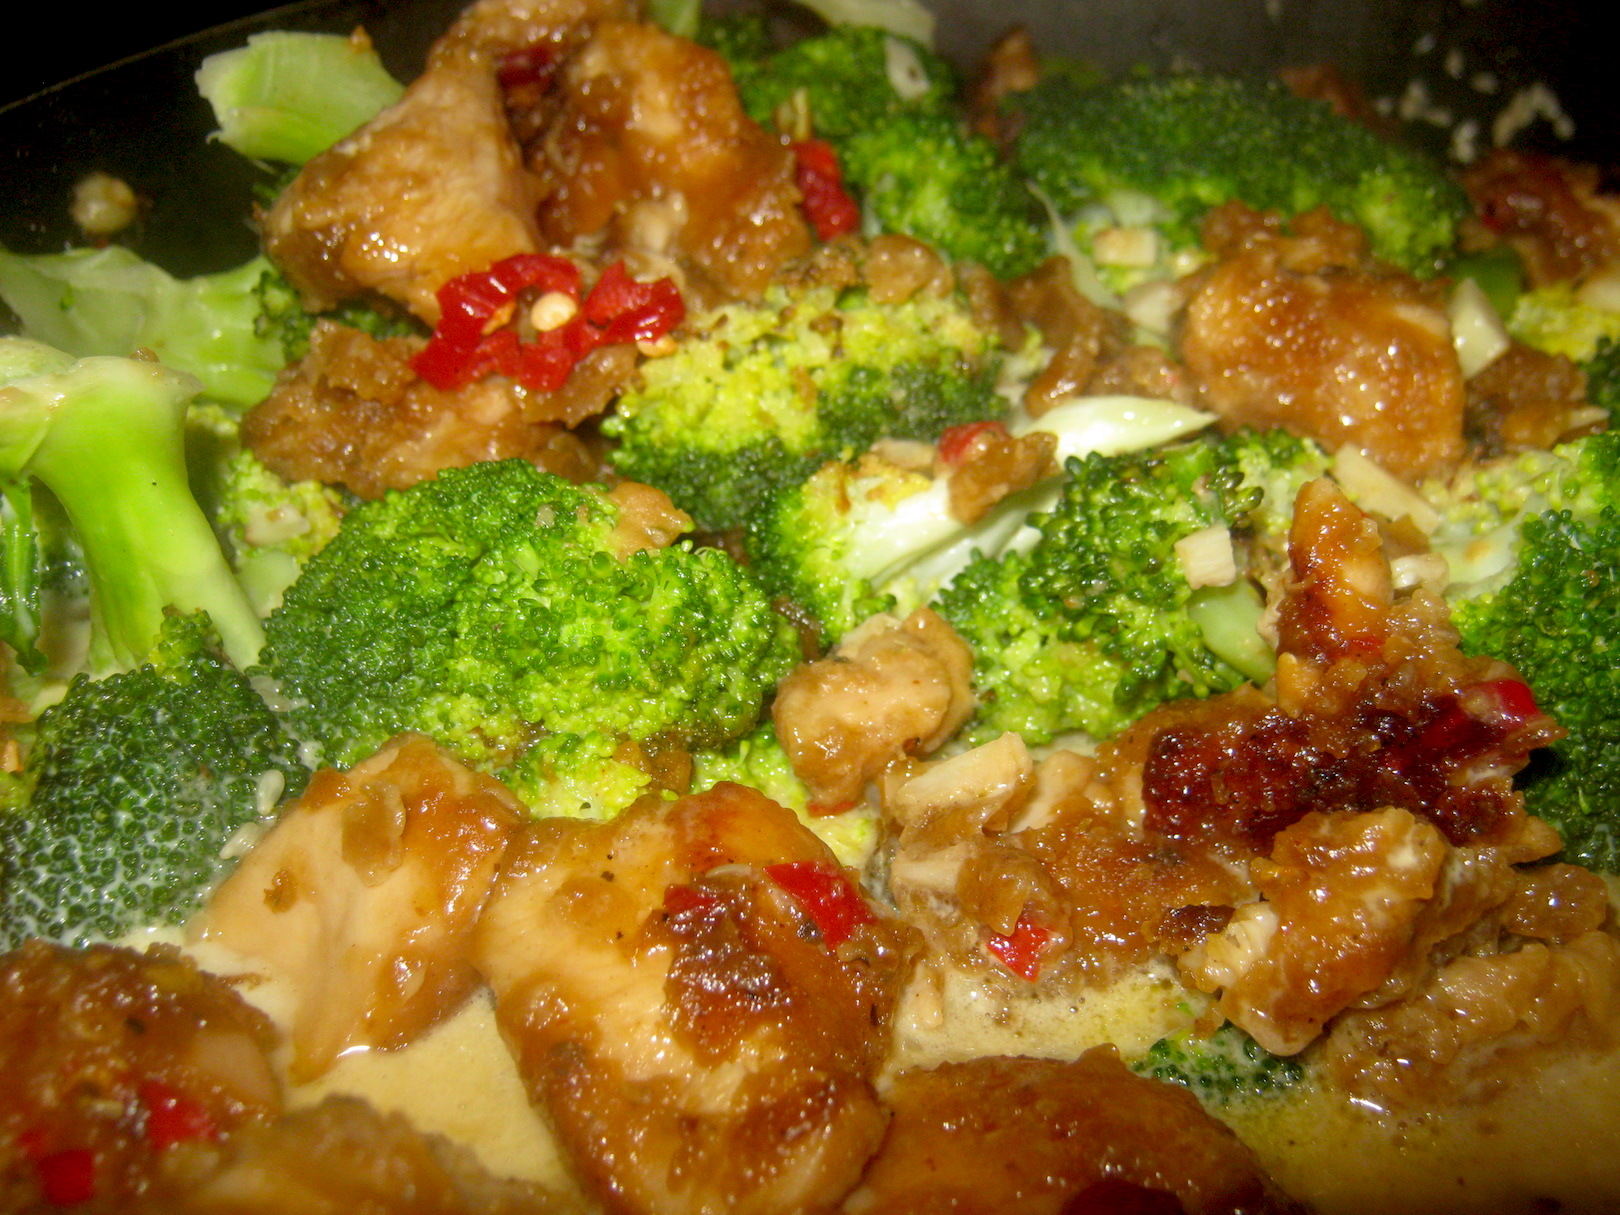 Sweet and tasty Broccoli Honey Chicken served with rice or potatoes